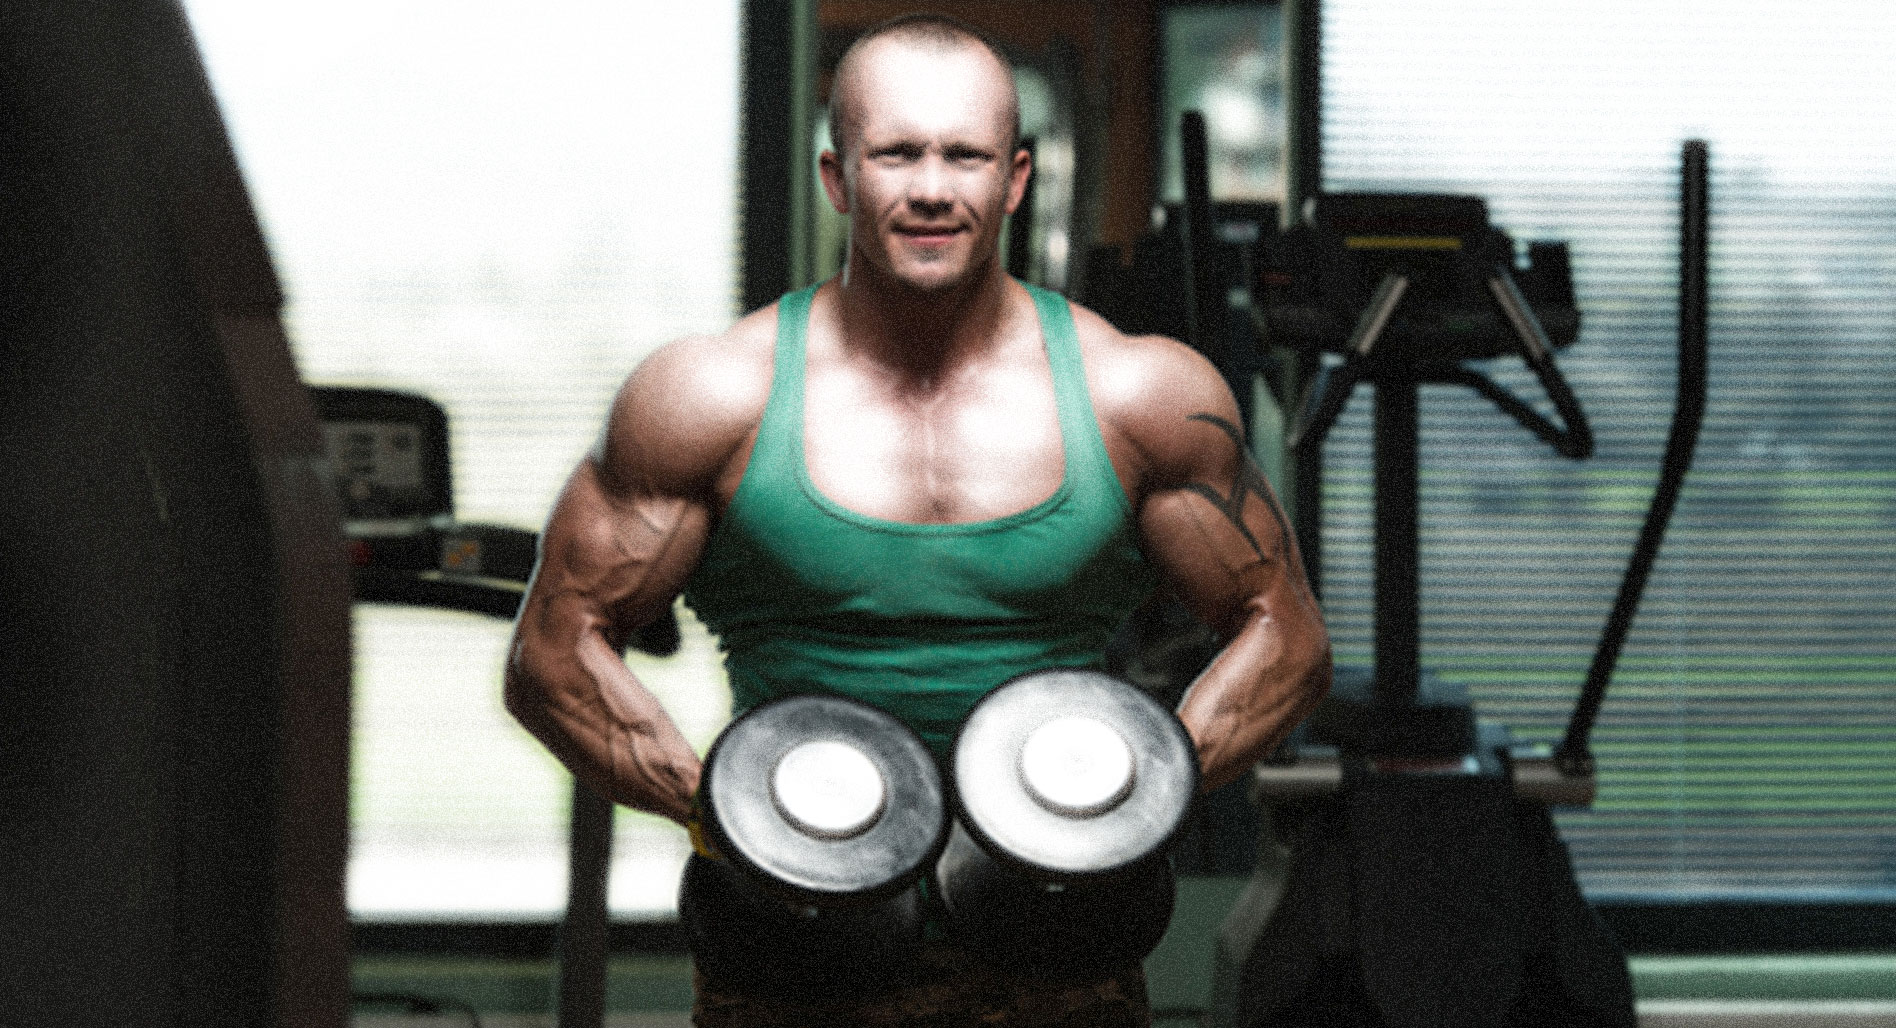 Build muscles by exhausting opposing muscles